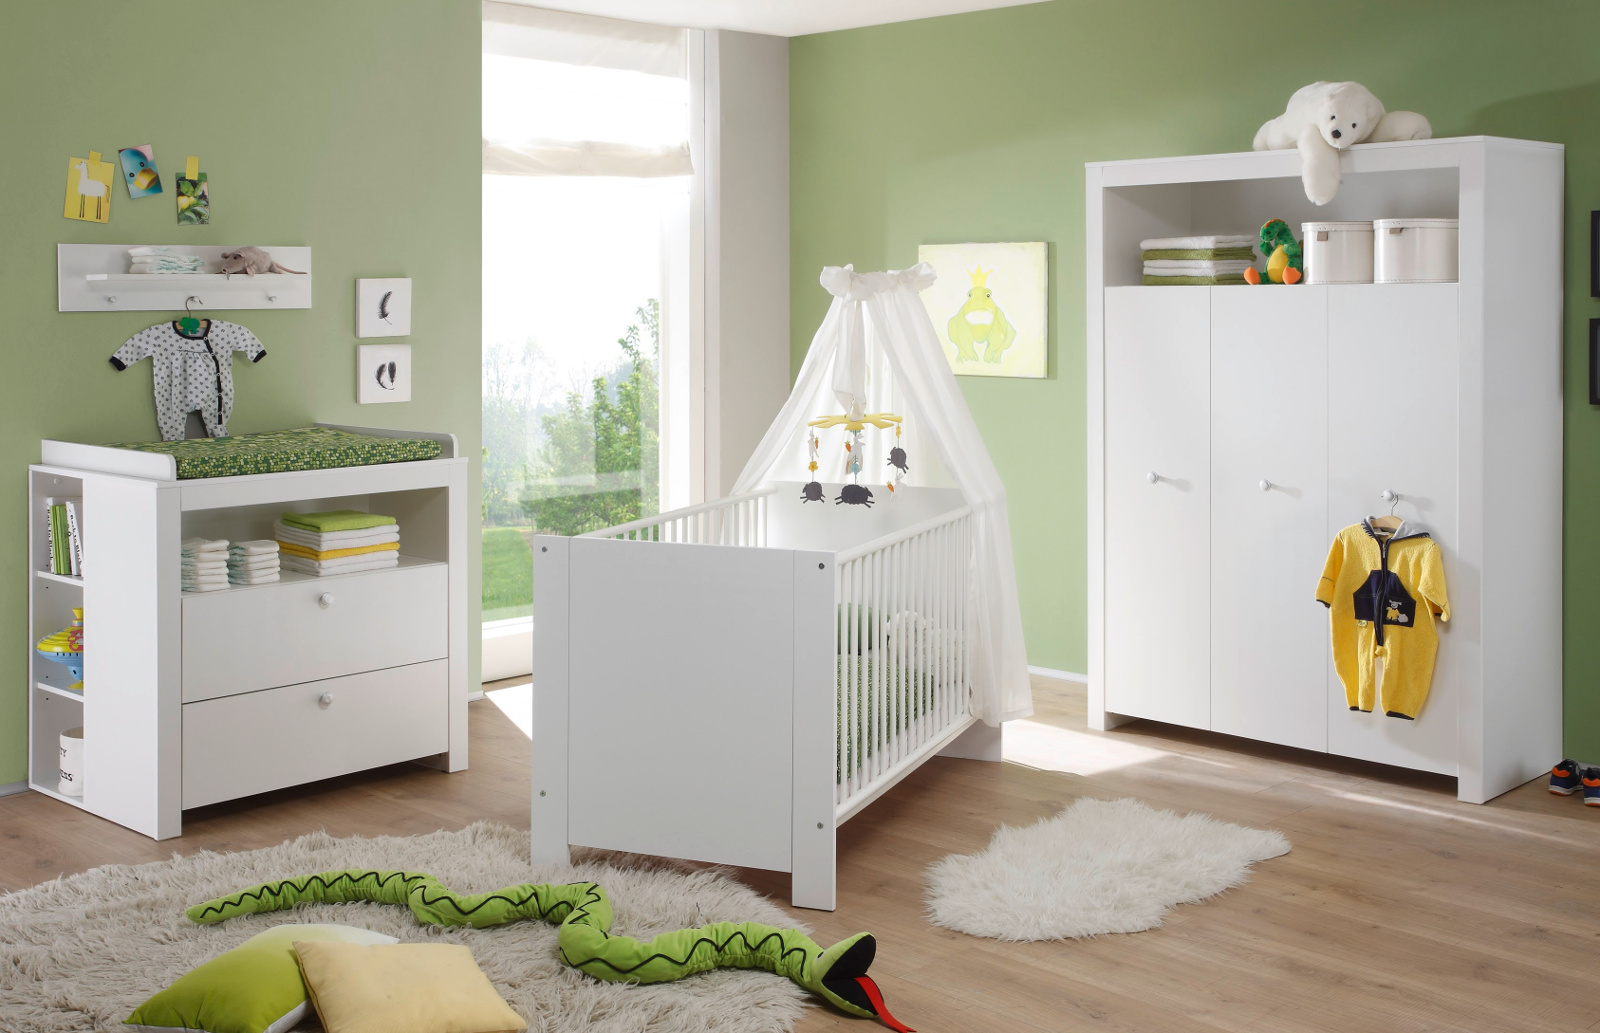 wandregal wandboard regal wei babym bel babyzimmer olivia garderobe 75 x 20 cm ebay. Black Bedroom Furniture Sets. Home Design Ideas